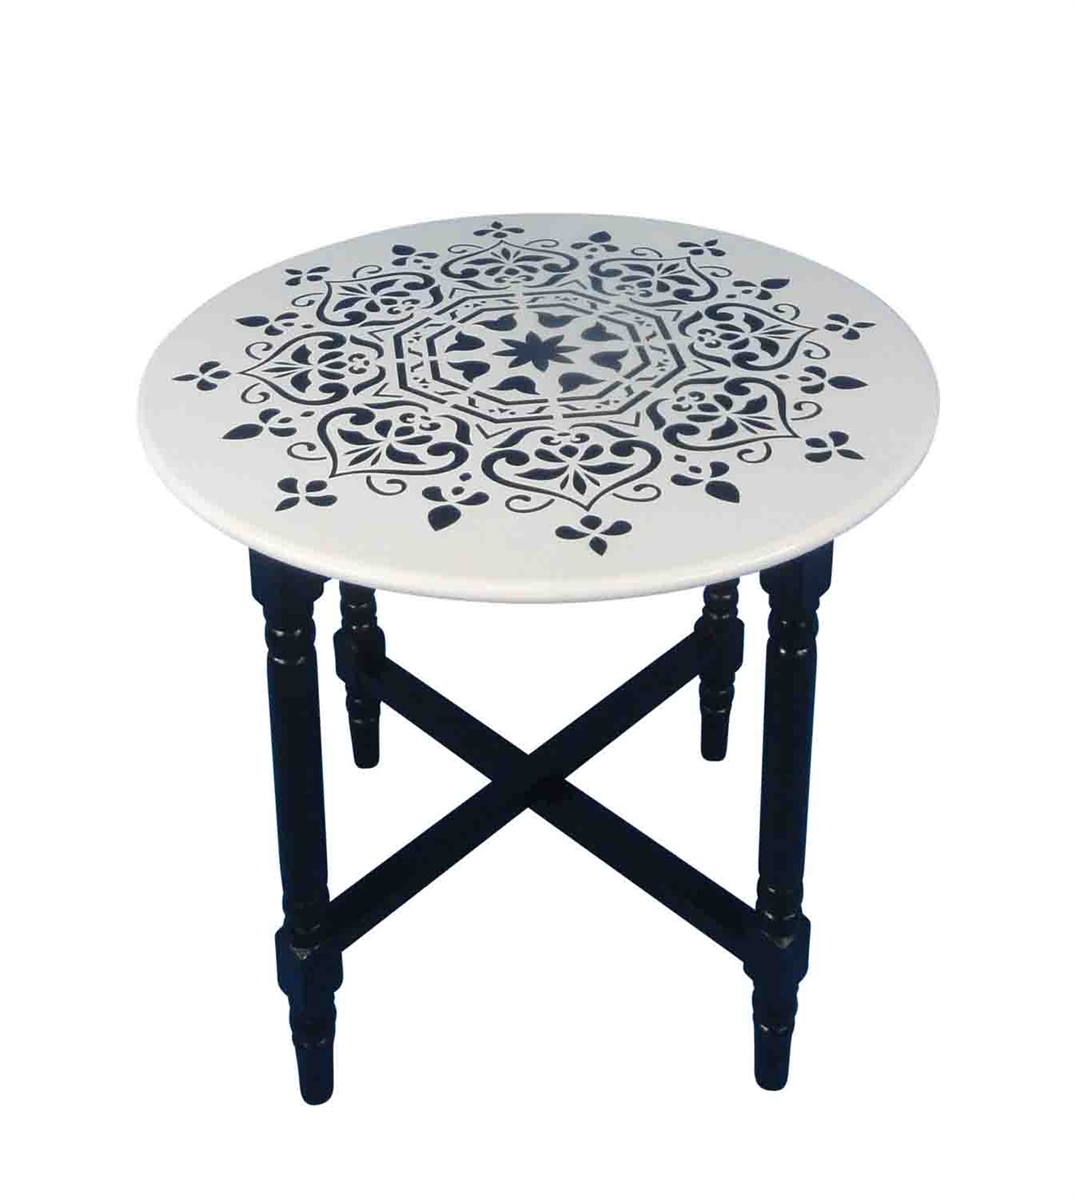 white wood accent table black mandala sagebrook home half for hallway counter height side nautical themed silver runner large wall clock italian marble coffee antique round top